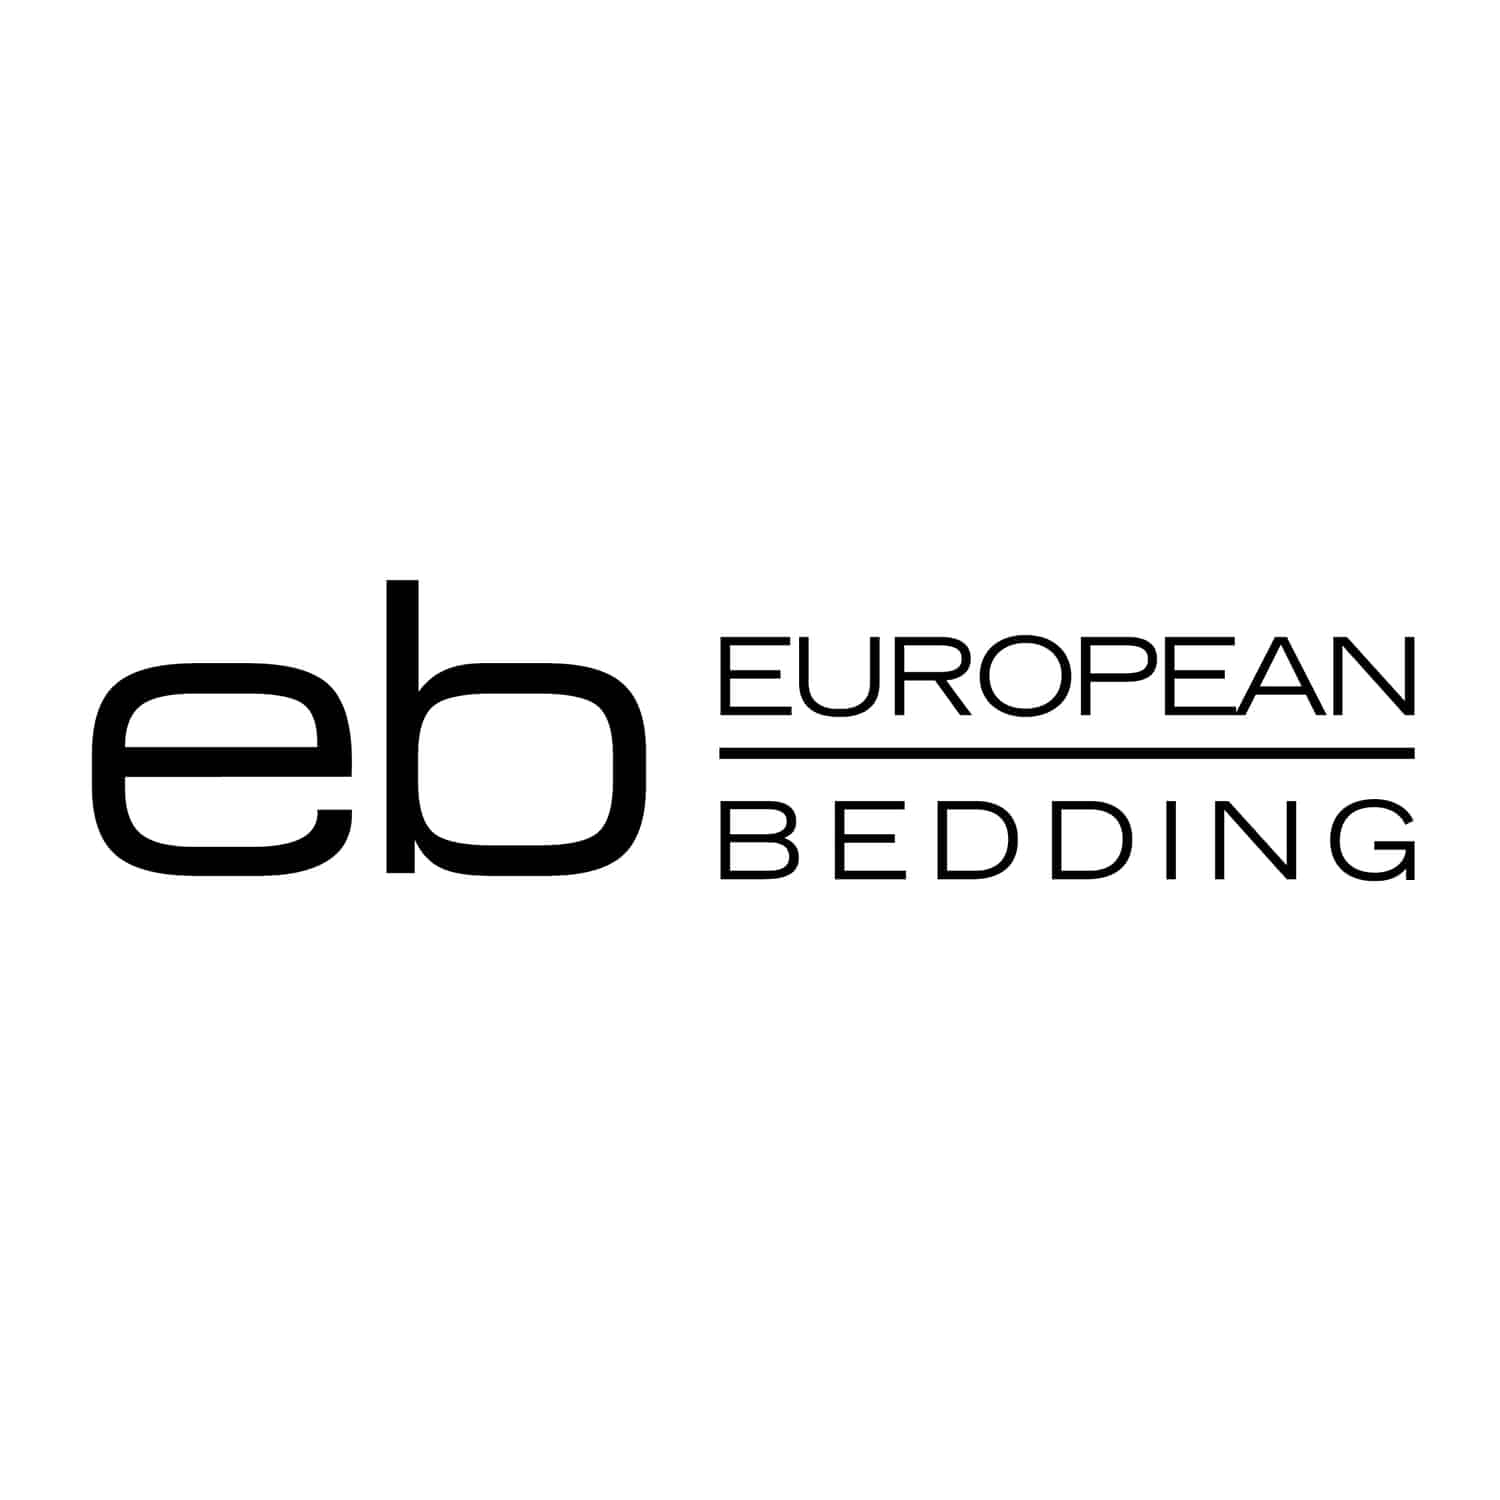 activite complementaire dans le bottin -European Bedding : Your one-stop solution for all your sleeping needs.